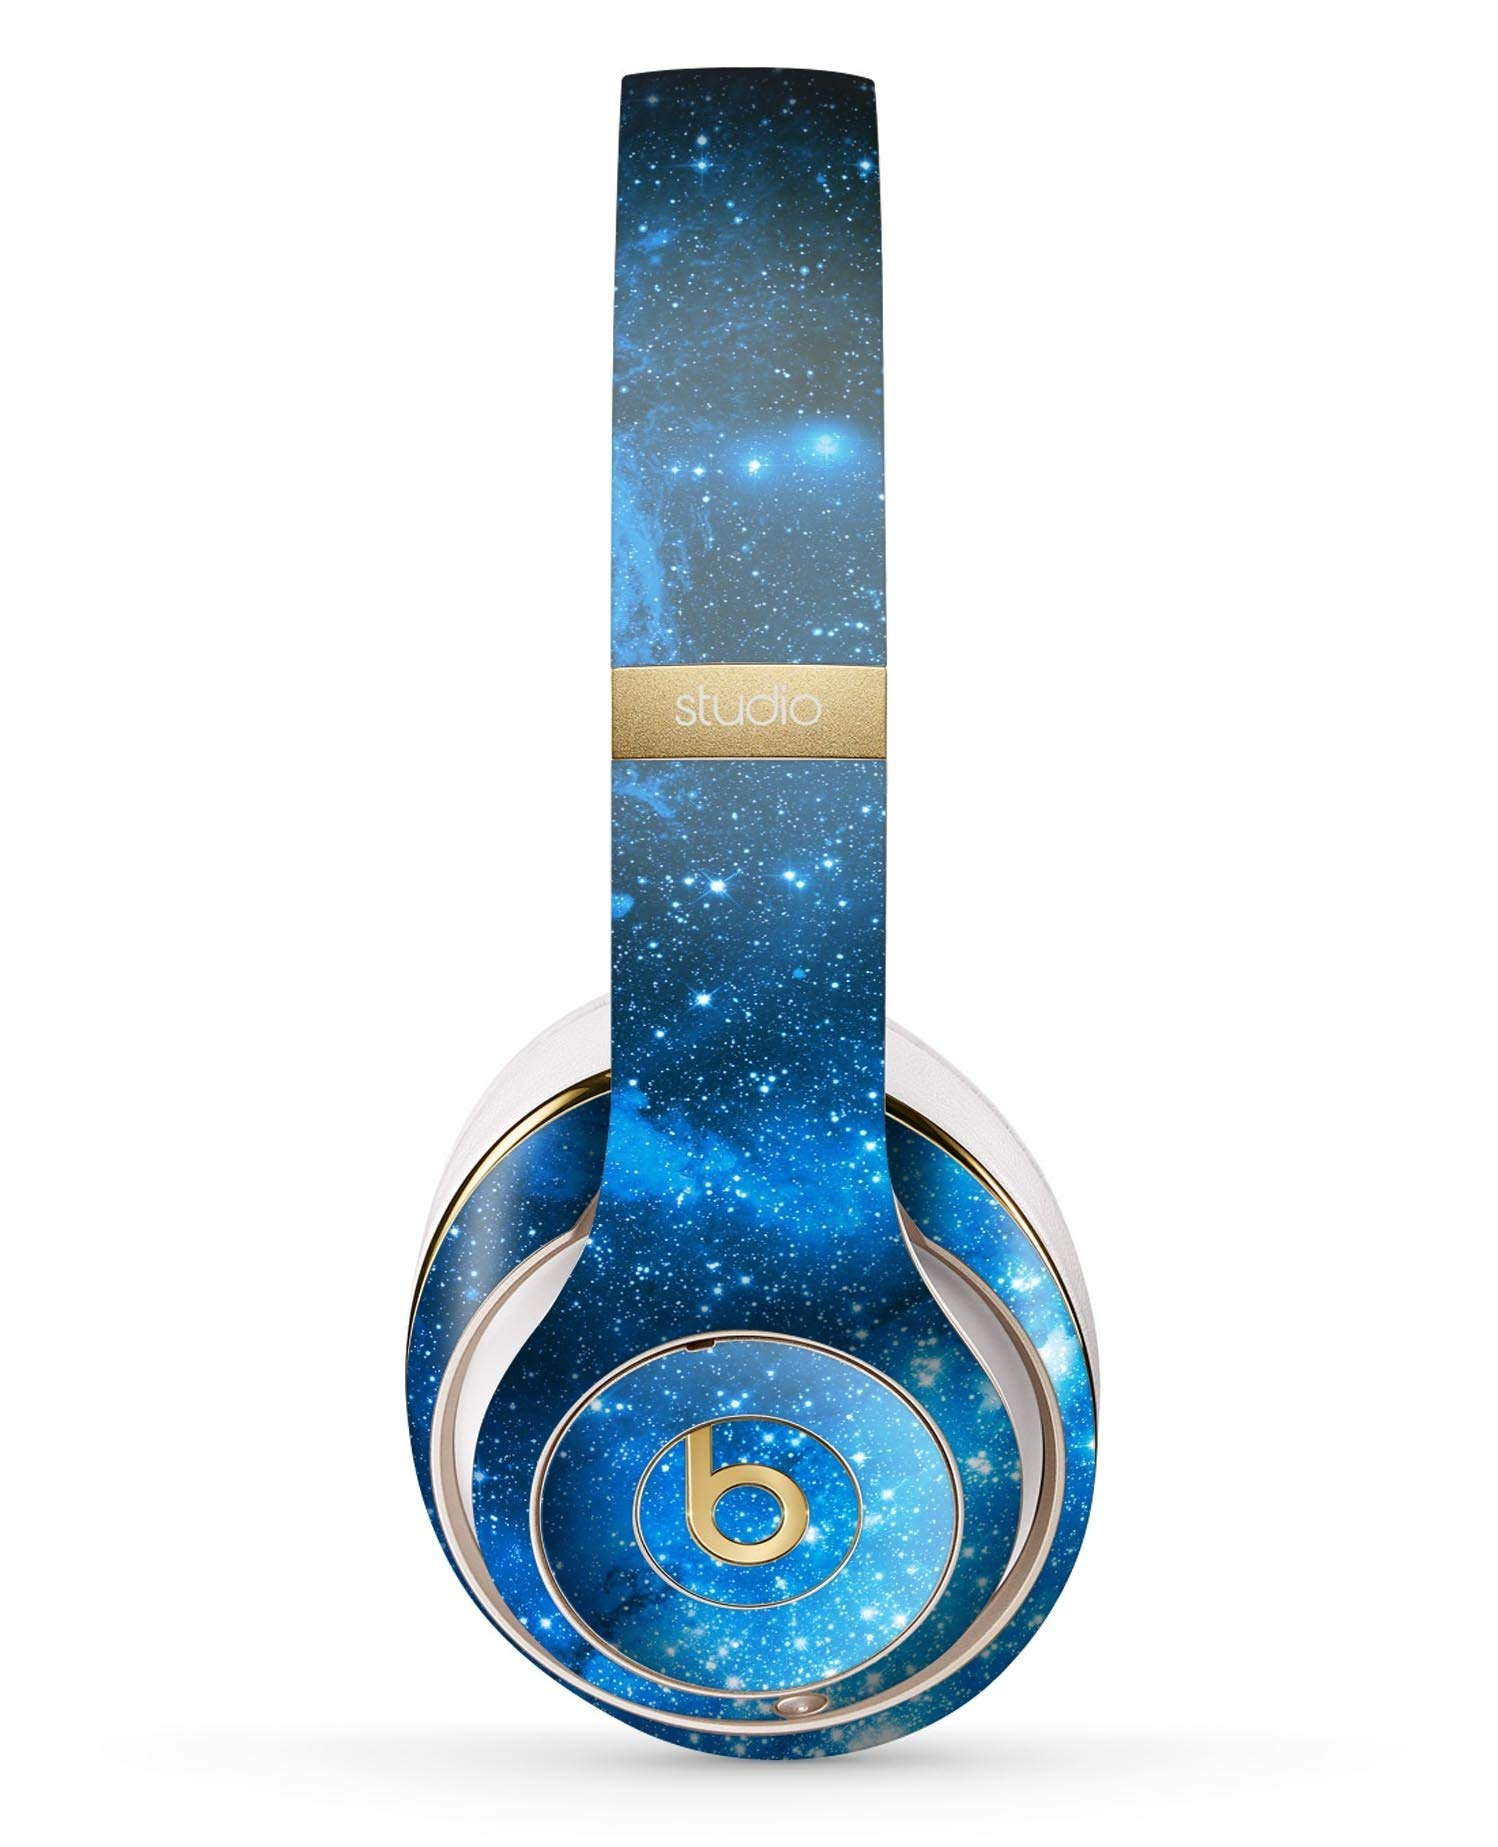 Blue Hue Nebula Design Skinz Full-Body Premium Authentic Skin Kit for The Beats by Dre Studio 2 or 3 Remastered Wireless Headphones Ultra-Thin Protective Decal Wrap